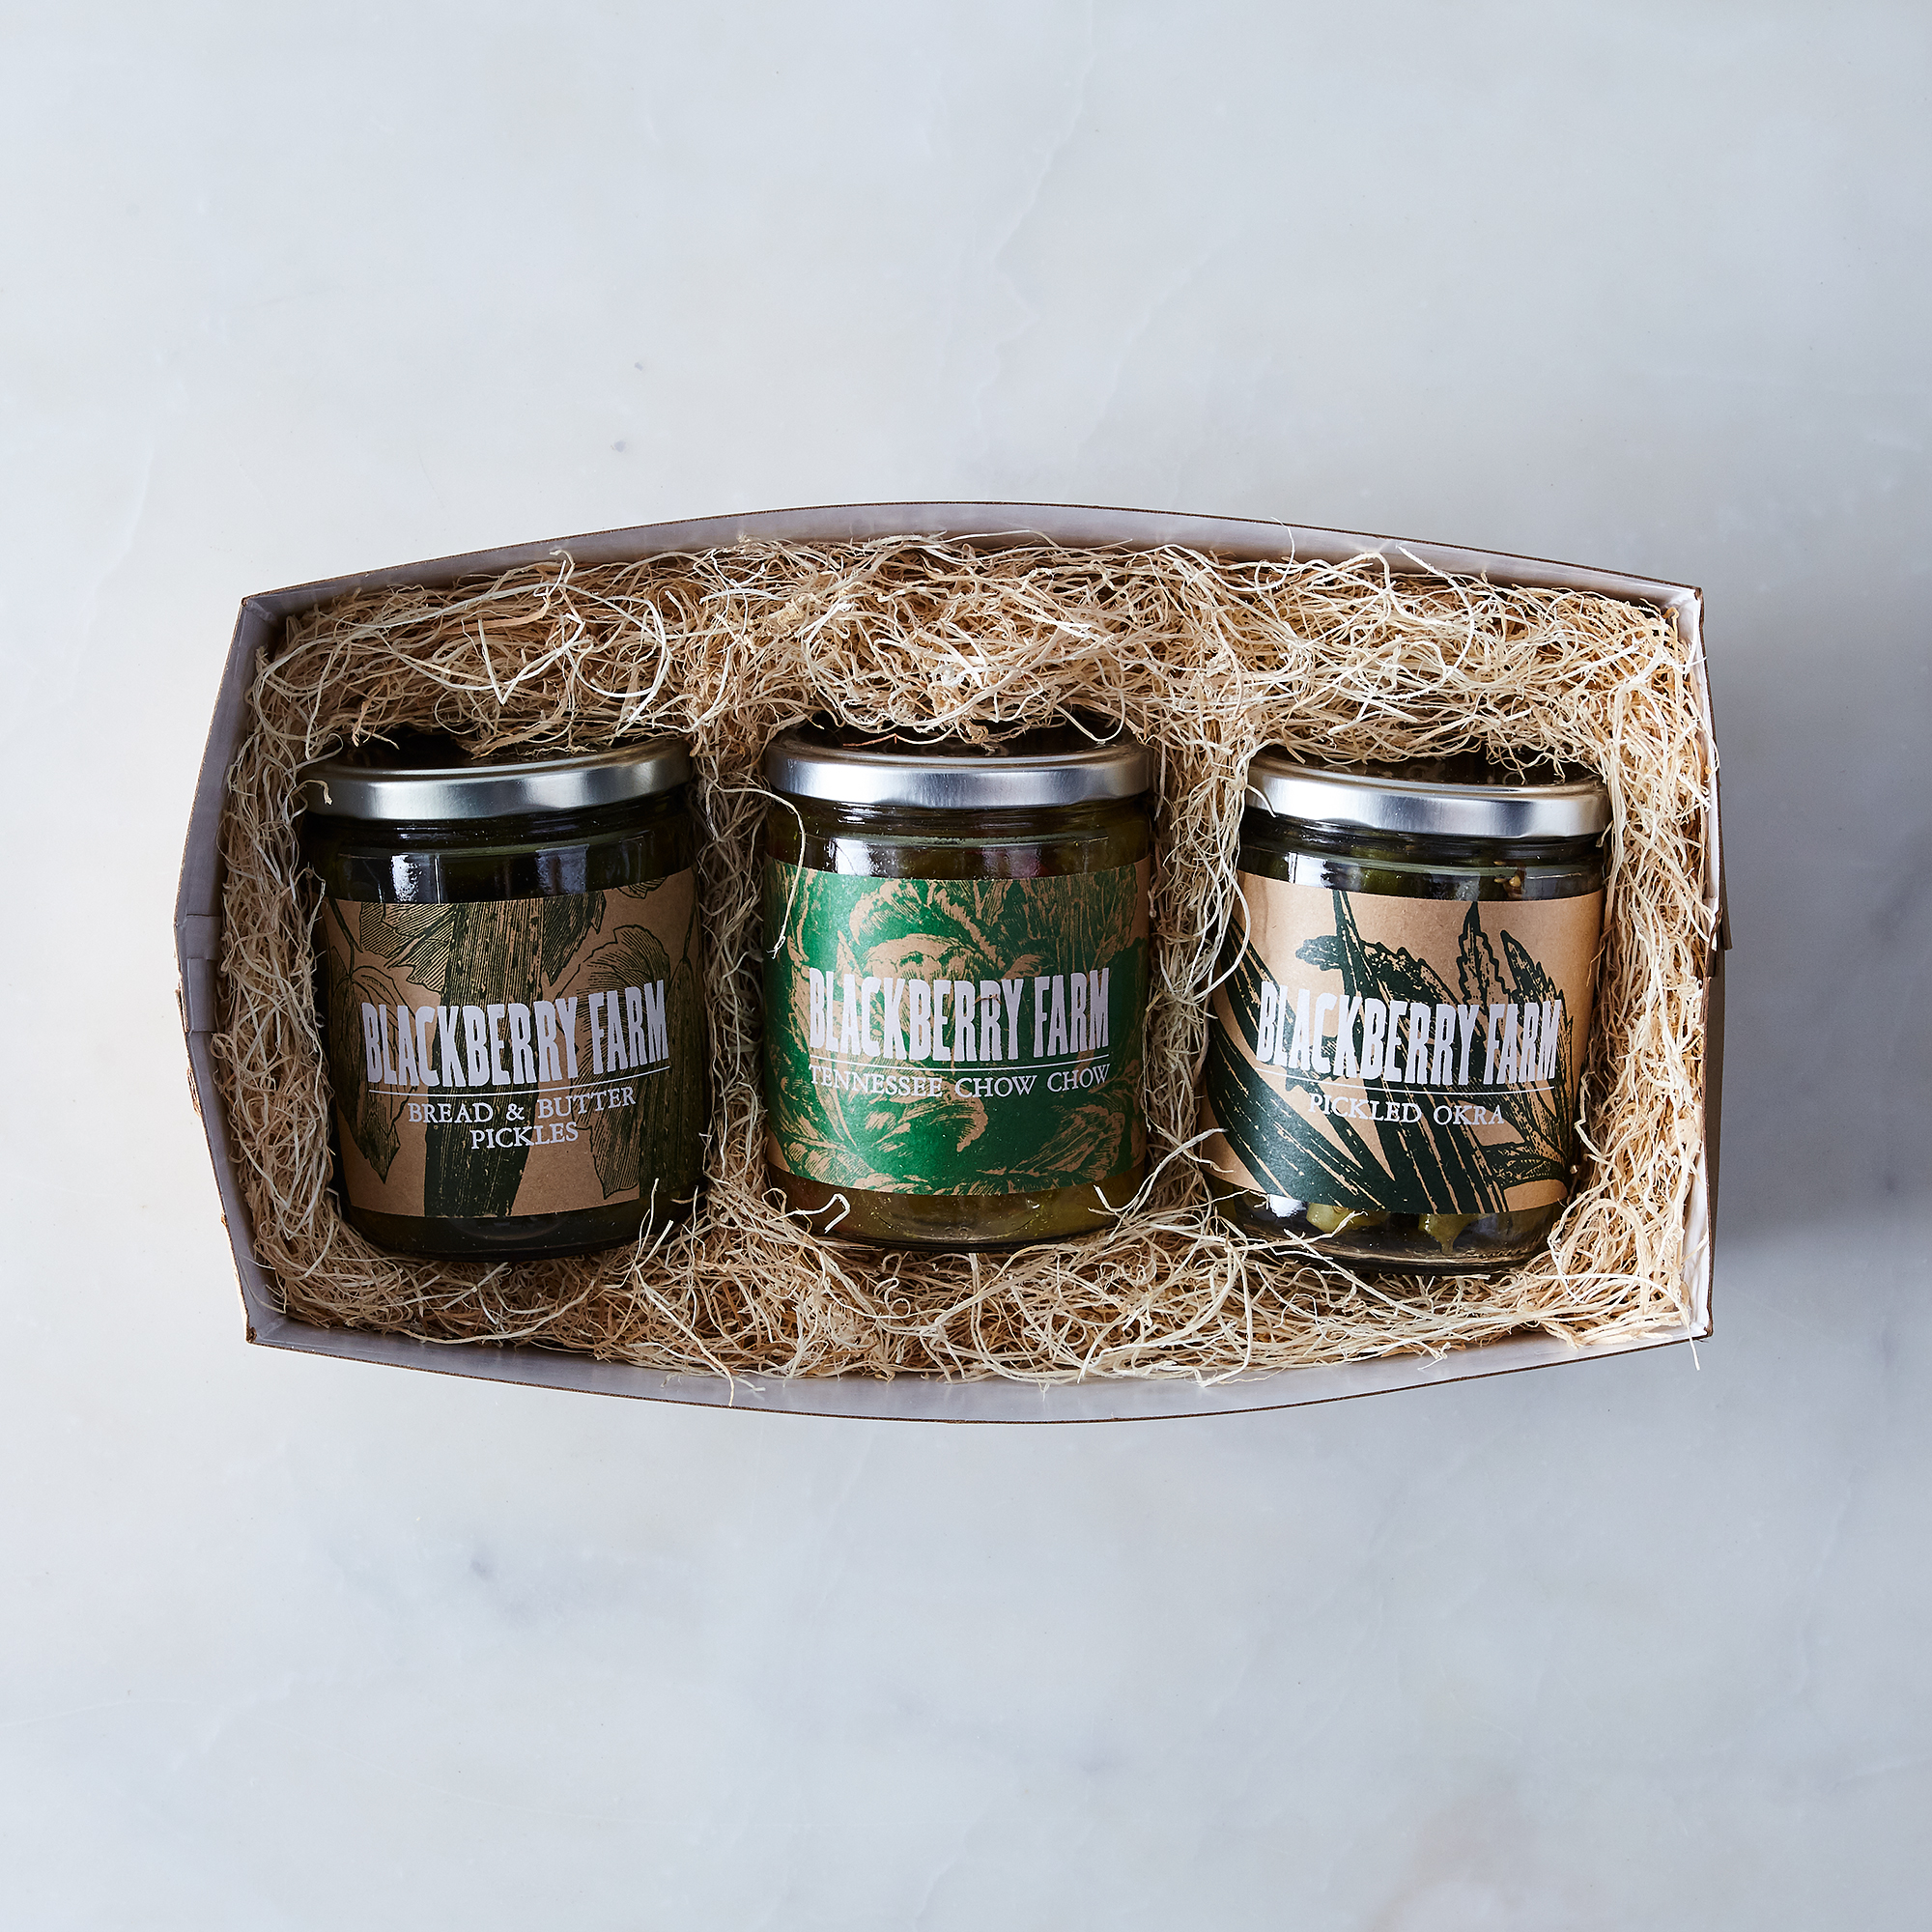 Blackberry Farm Pickle Trio in a box